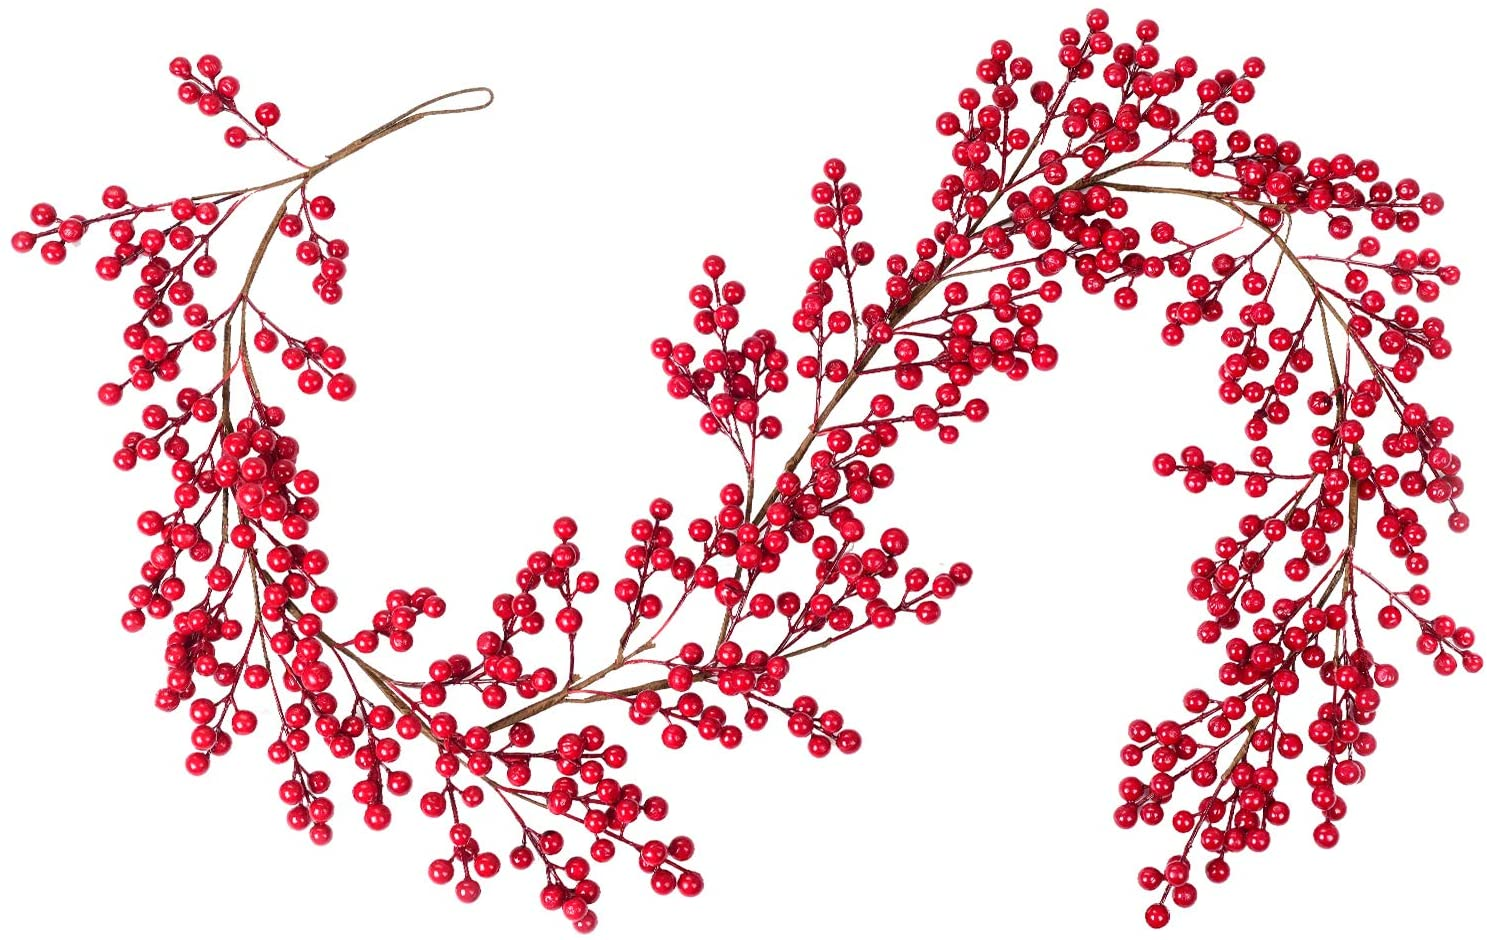 DearHouse 5.58FT Red Berry Christmas Garland, Flexible Artificial Berry Garland for Indoor Outdoor Hone Fireplace Decoration for Winter Christmas Holiday New Year Decor.